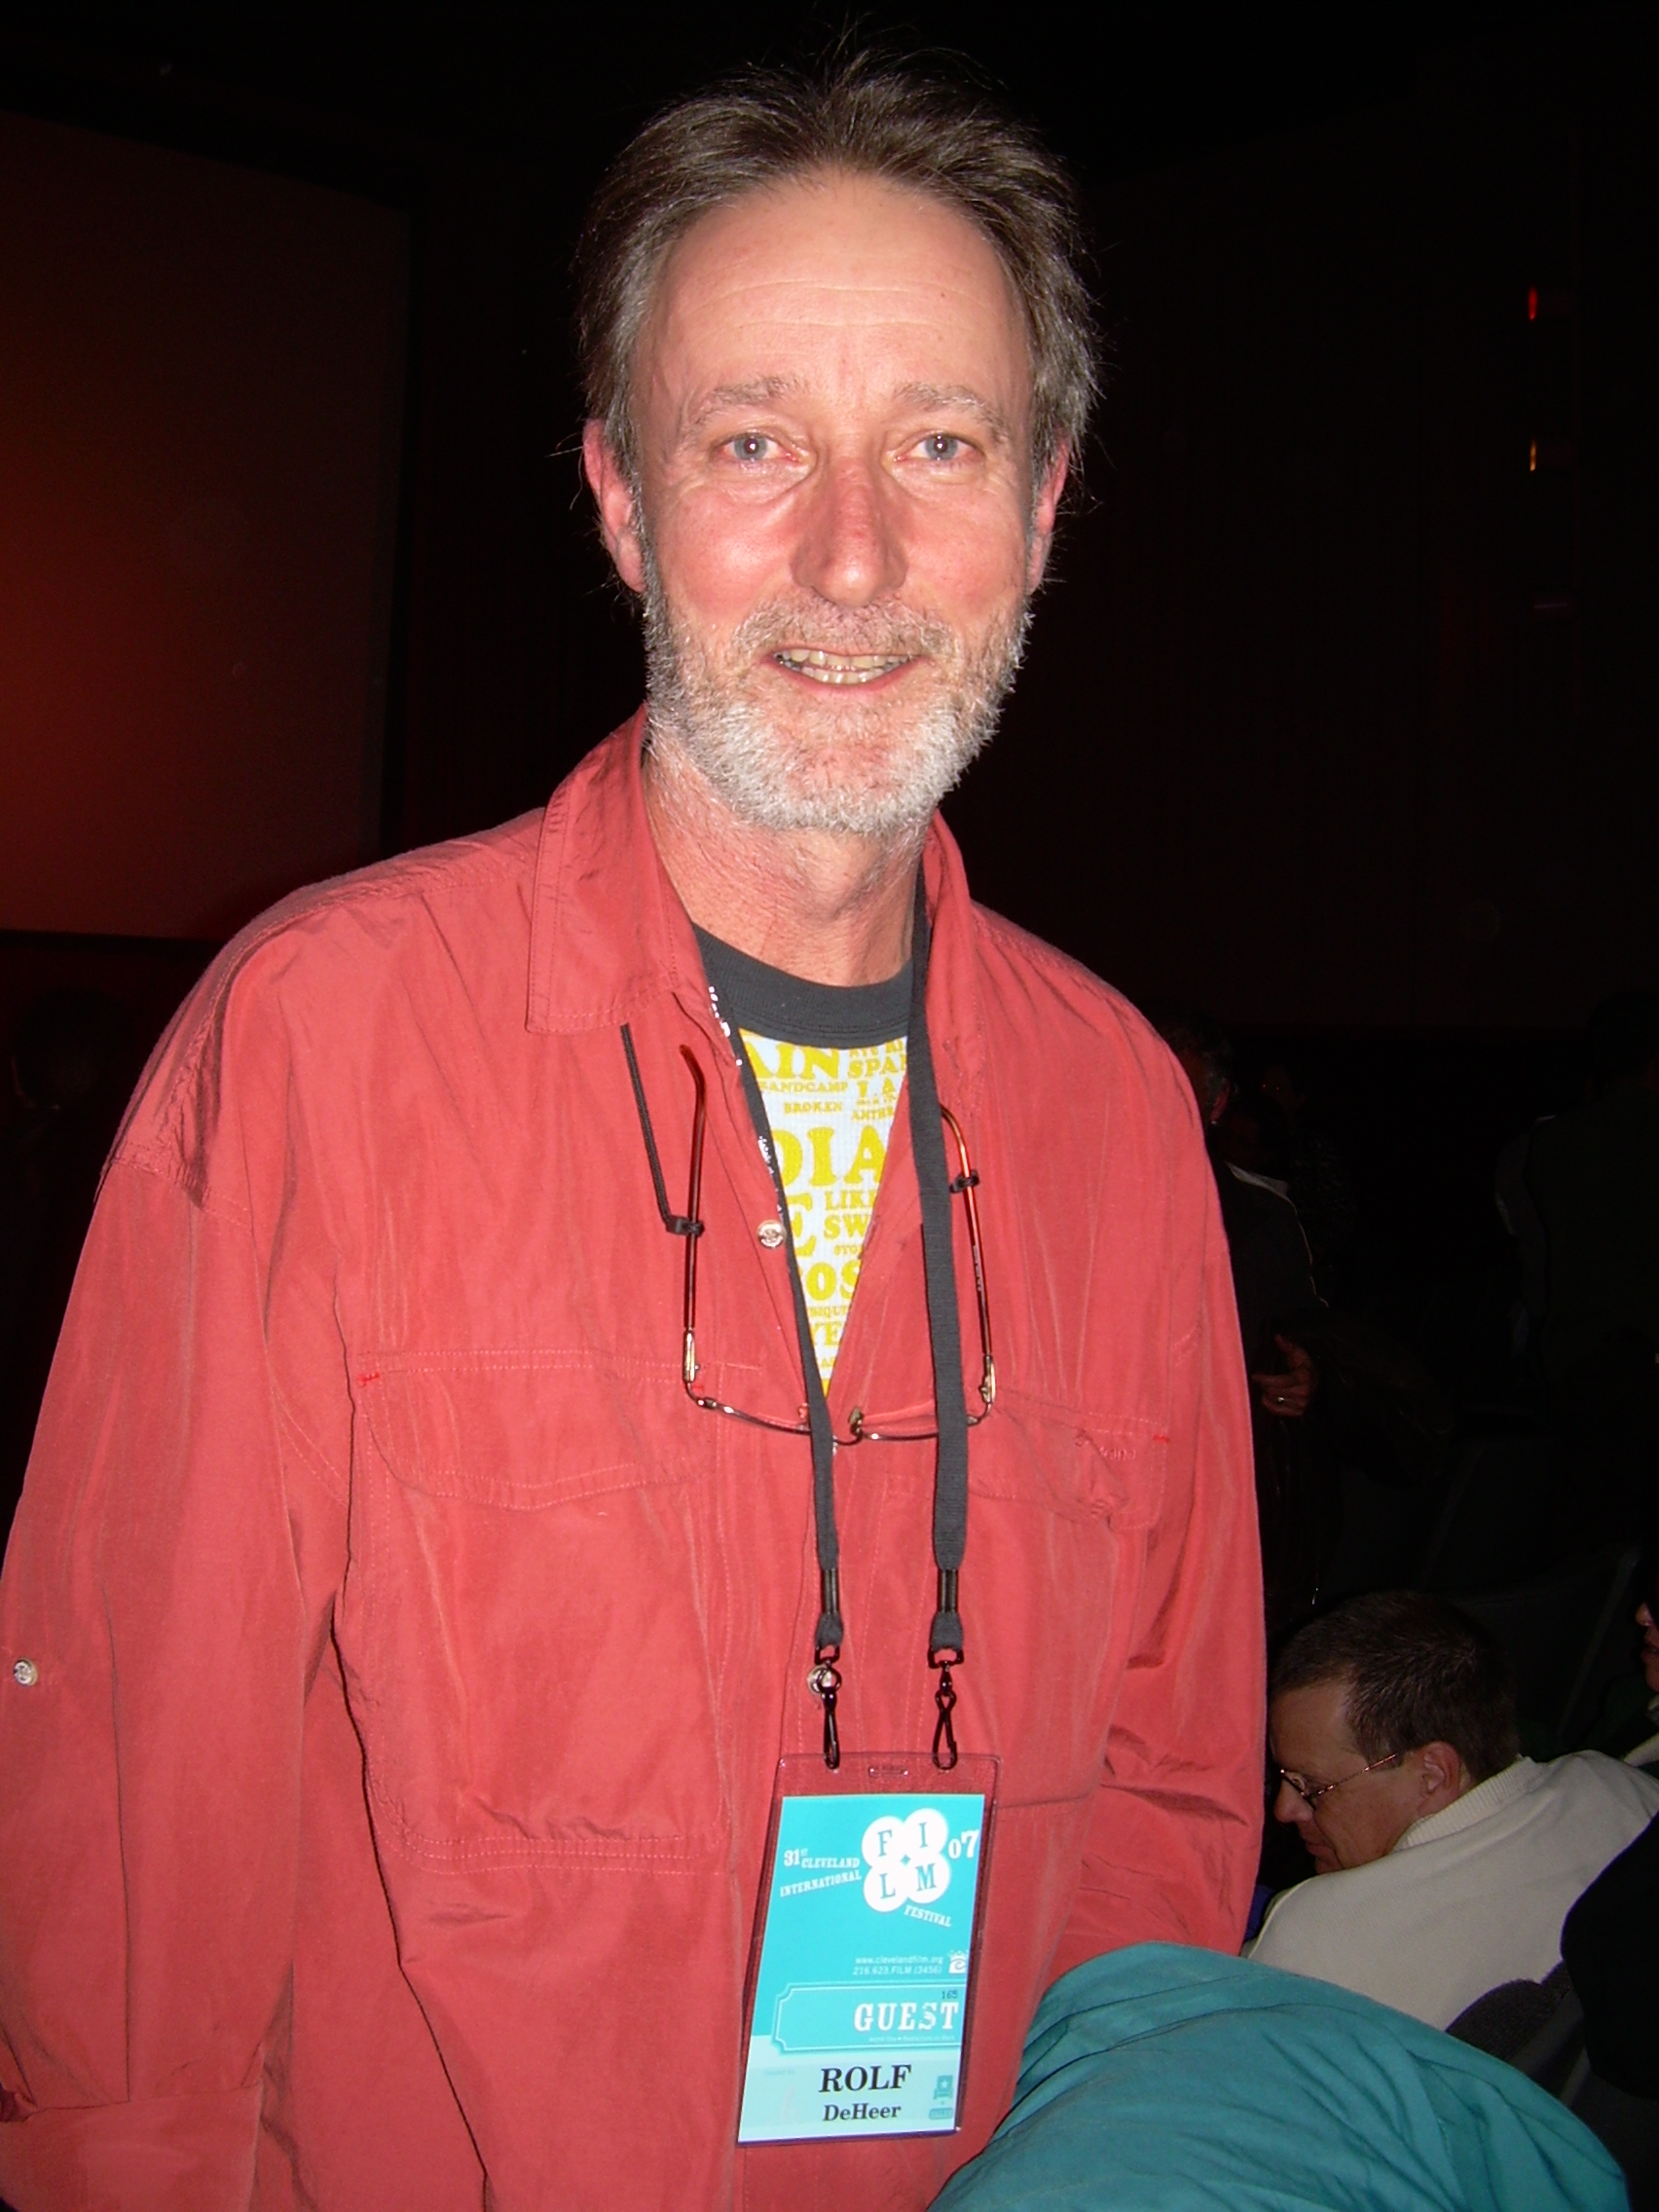 Rolf de Heer, 2006 (By Whit (originally posted to Flickr as Rolf de Heer), CC BY-SA 2.0, via Wikimedia Commons)